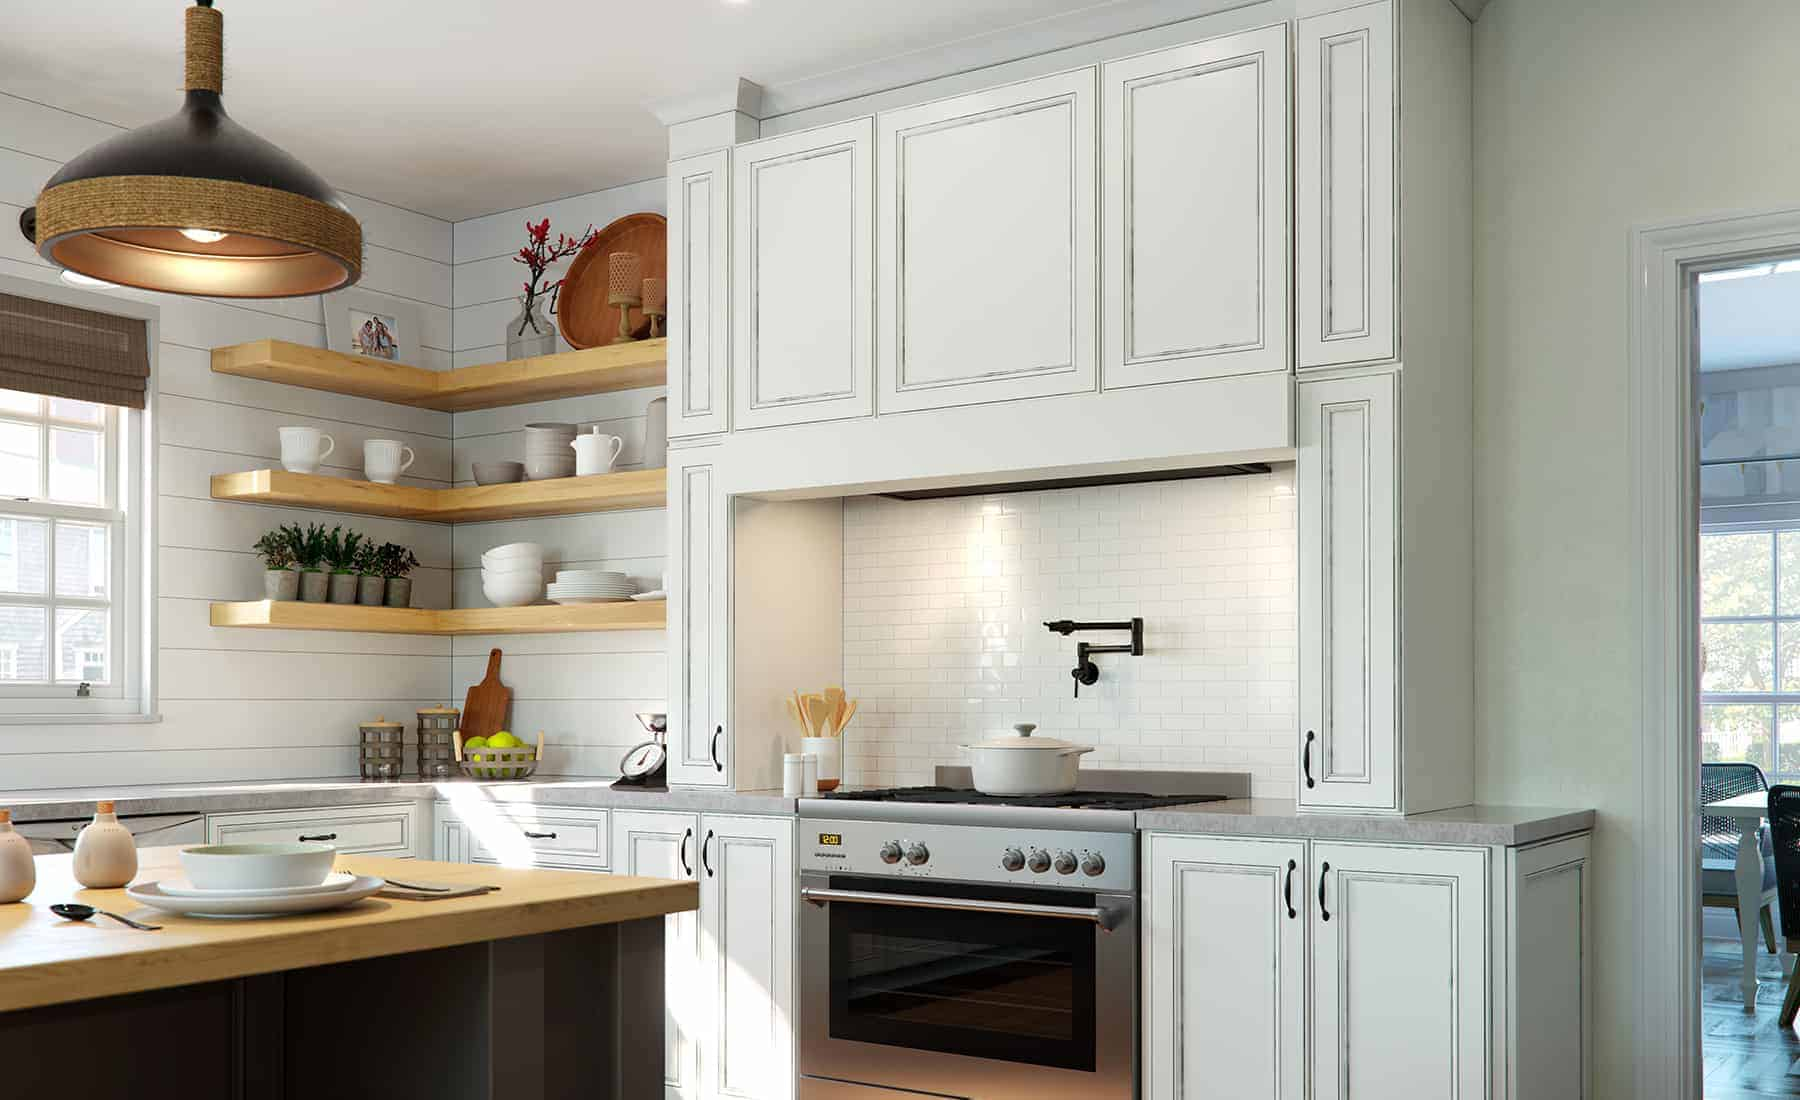 Picture perfect kitchen designs - How to design the perfect kitchen ...